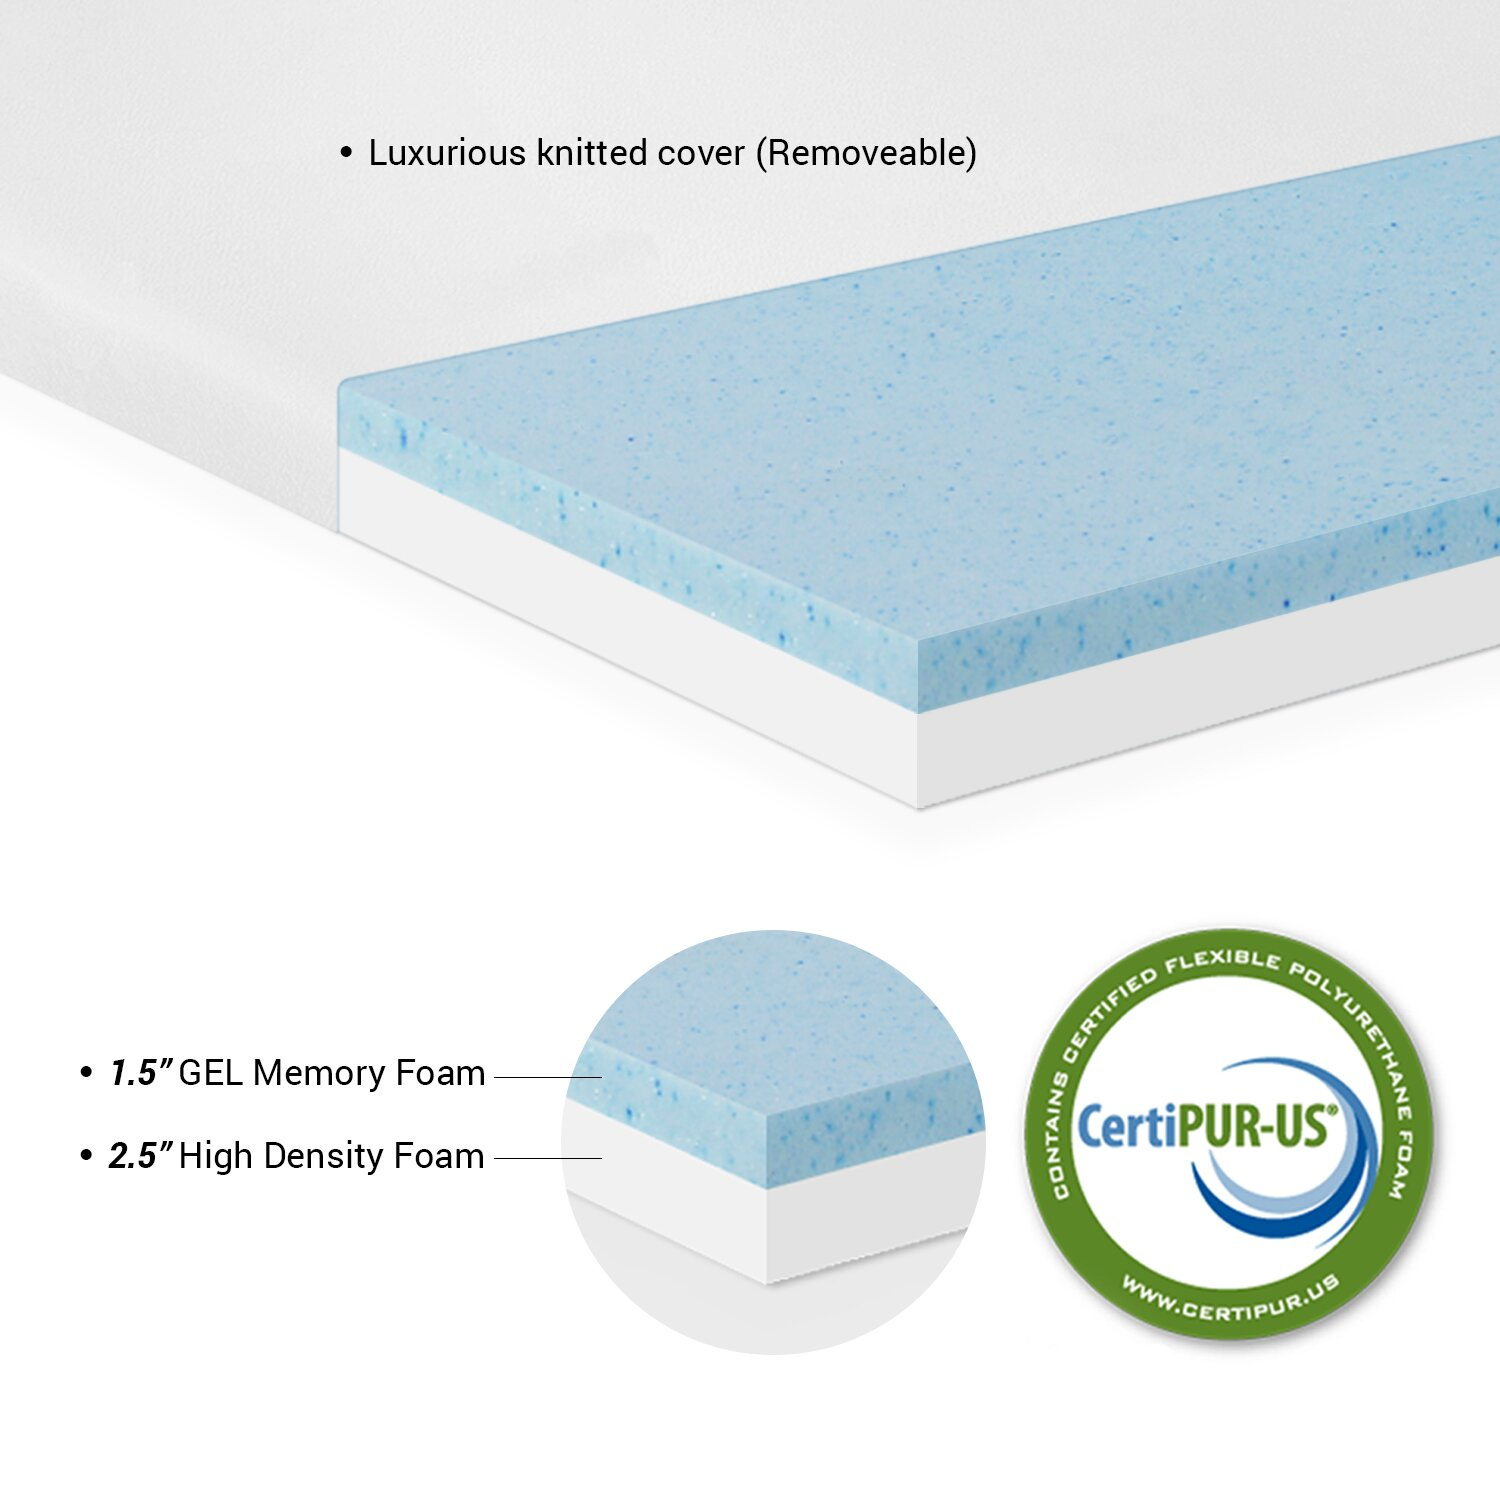 Furinno Healthy Sleep 4 Visco Elastic Gel Memory Foam Mattress Topper Reviews Wayfair